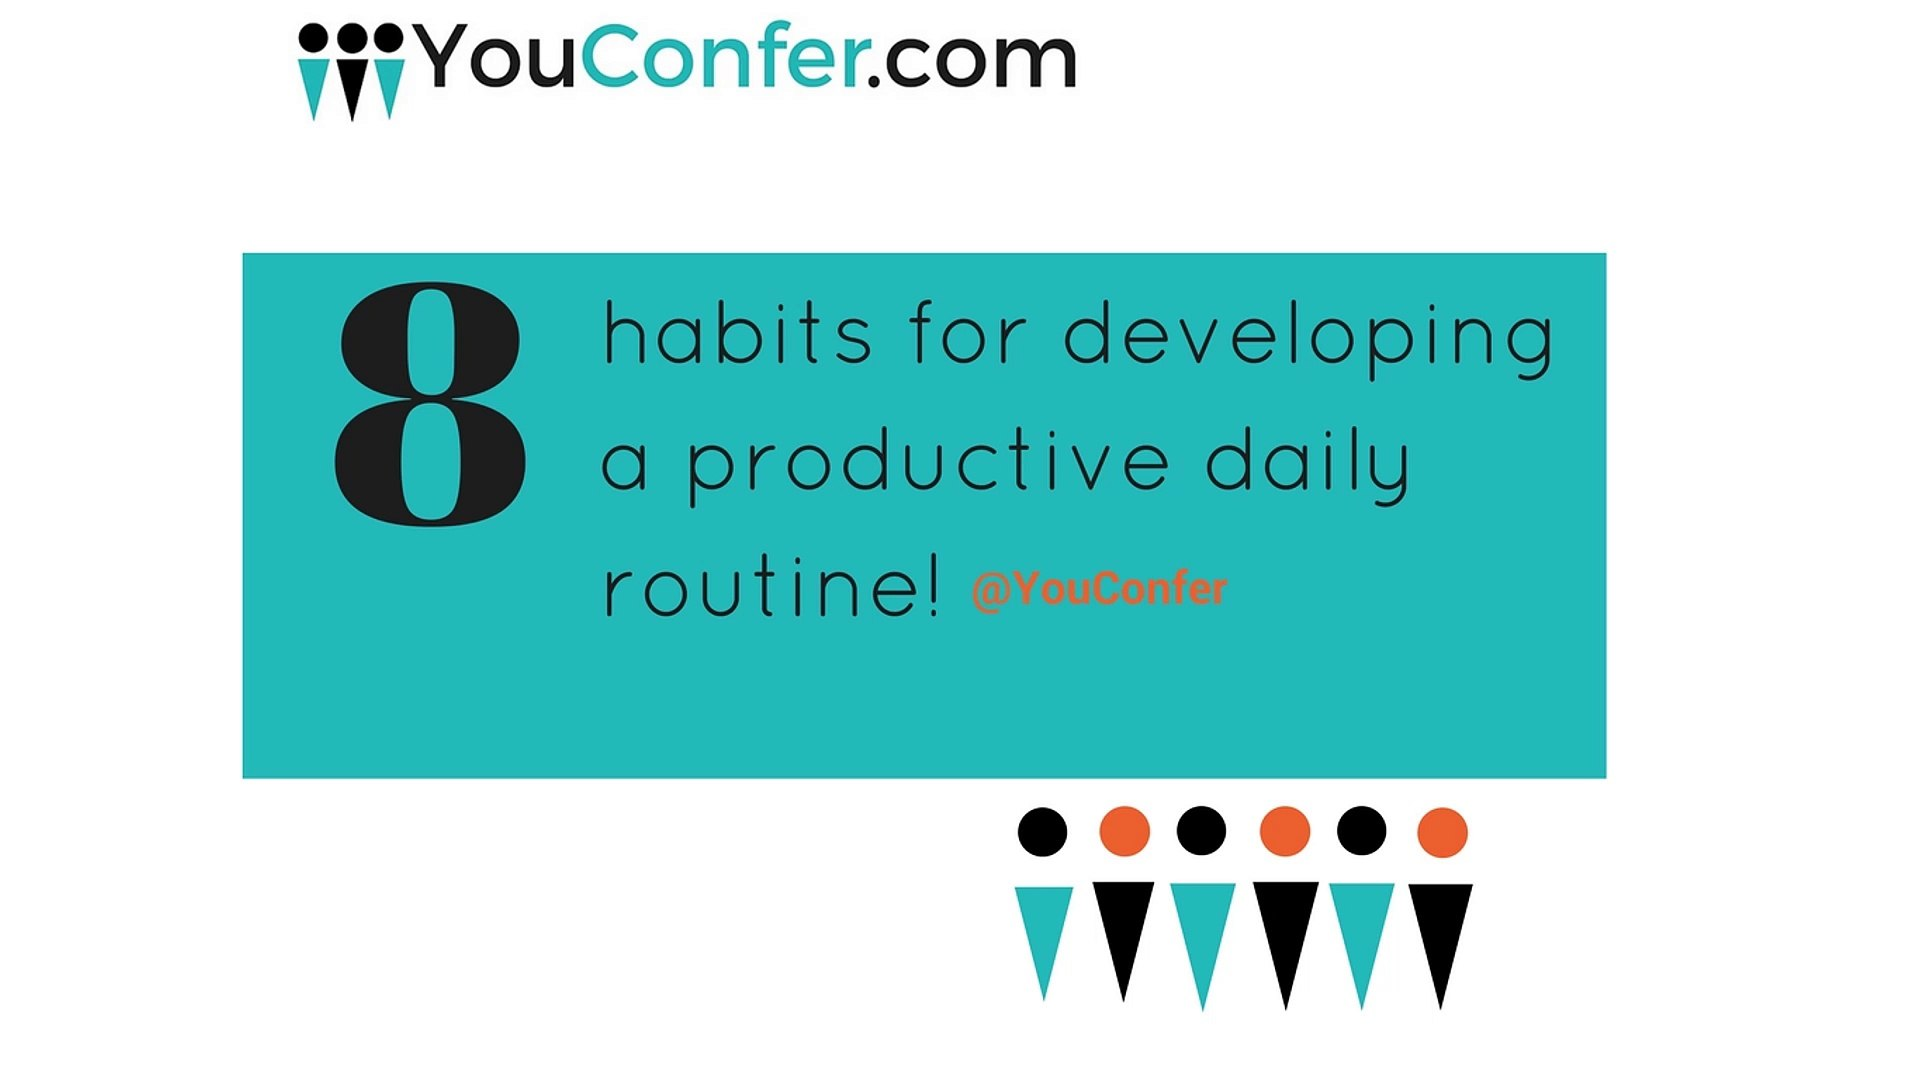 8 habits for developing a productive daily routine